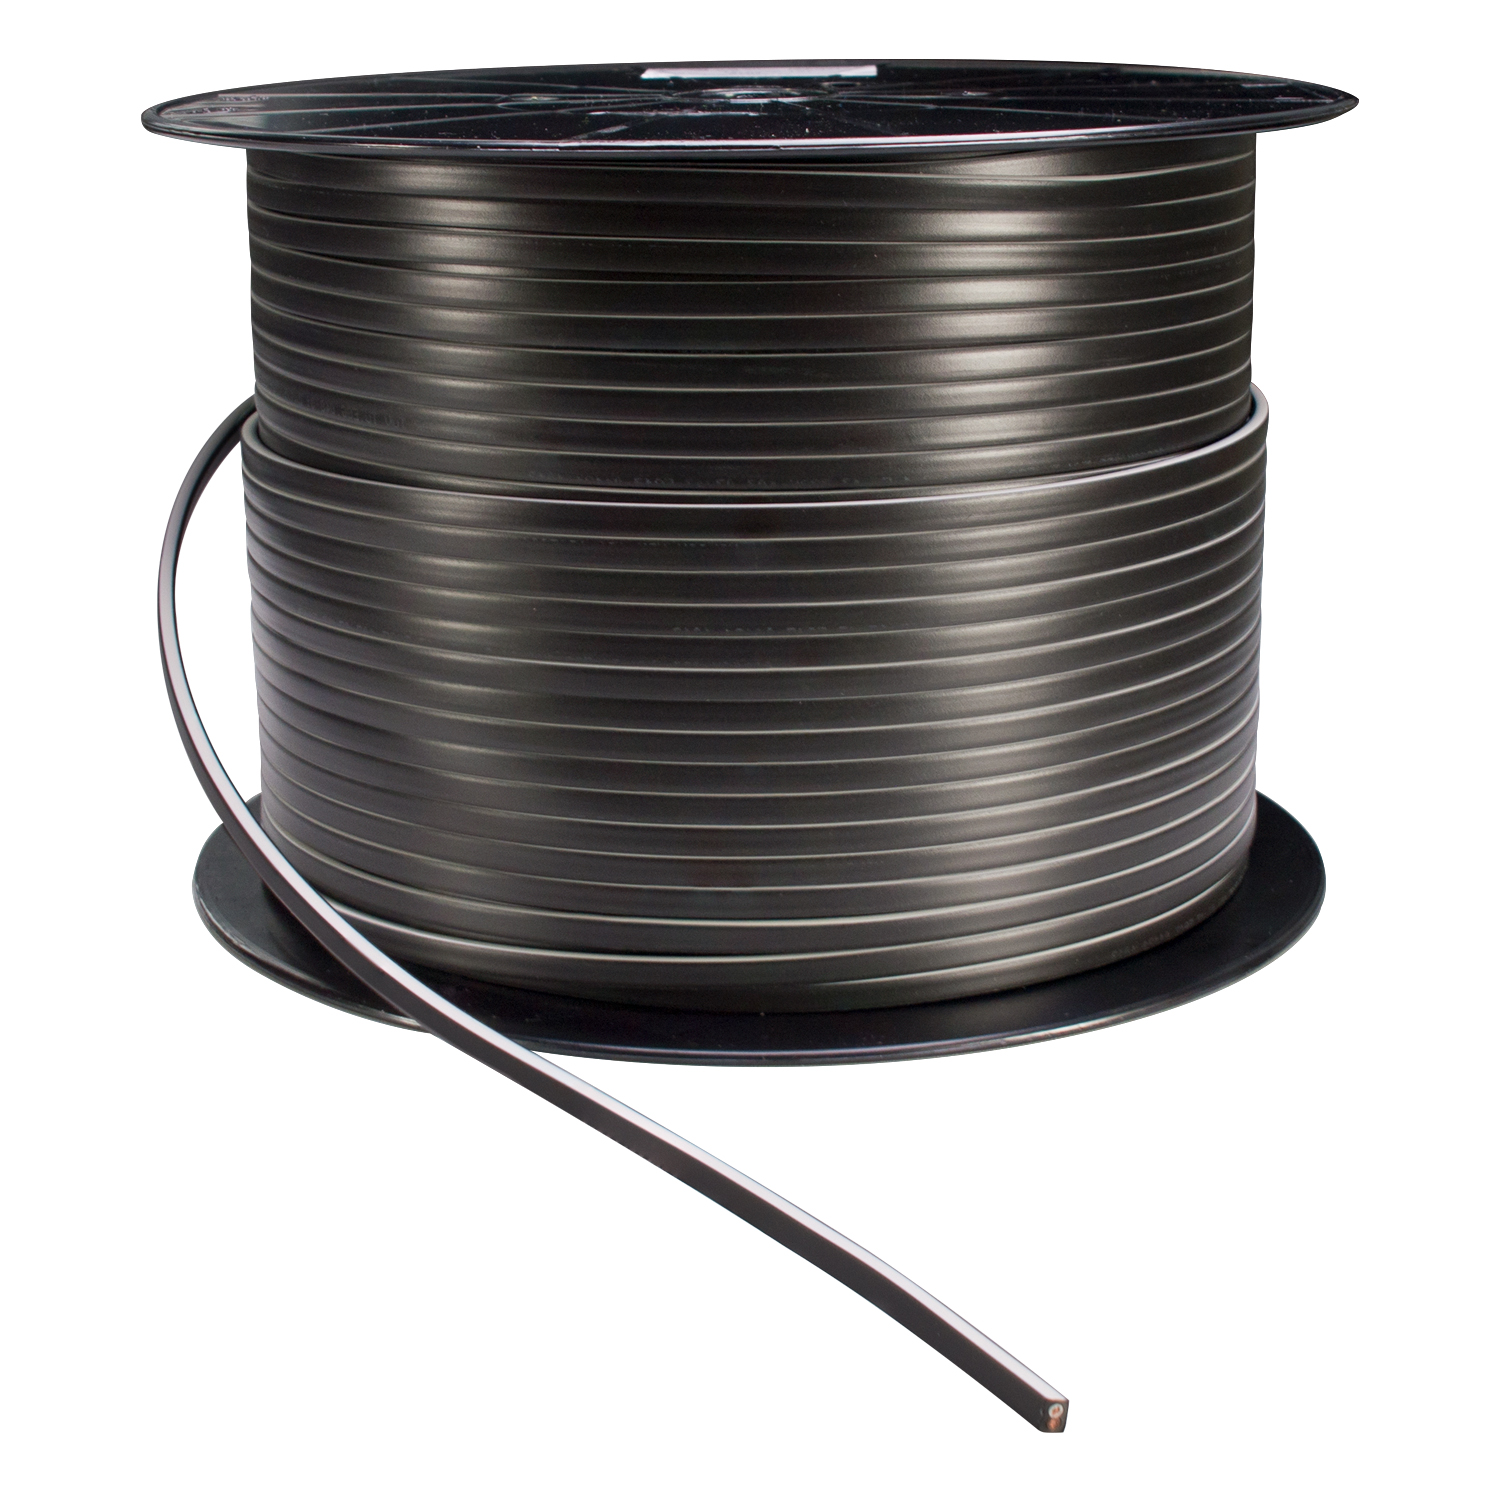 Aspöck flat cable in rolls, 2 core cable, PVC | purchase online